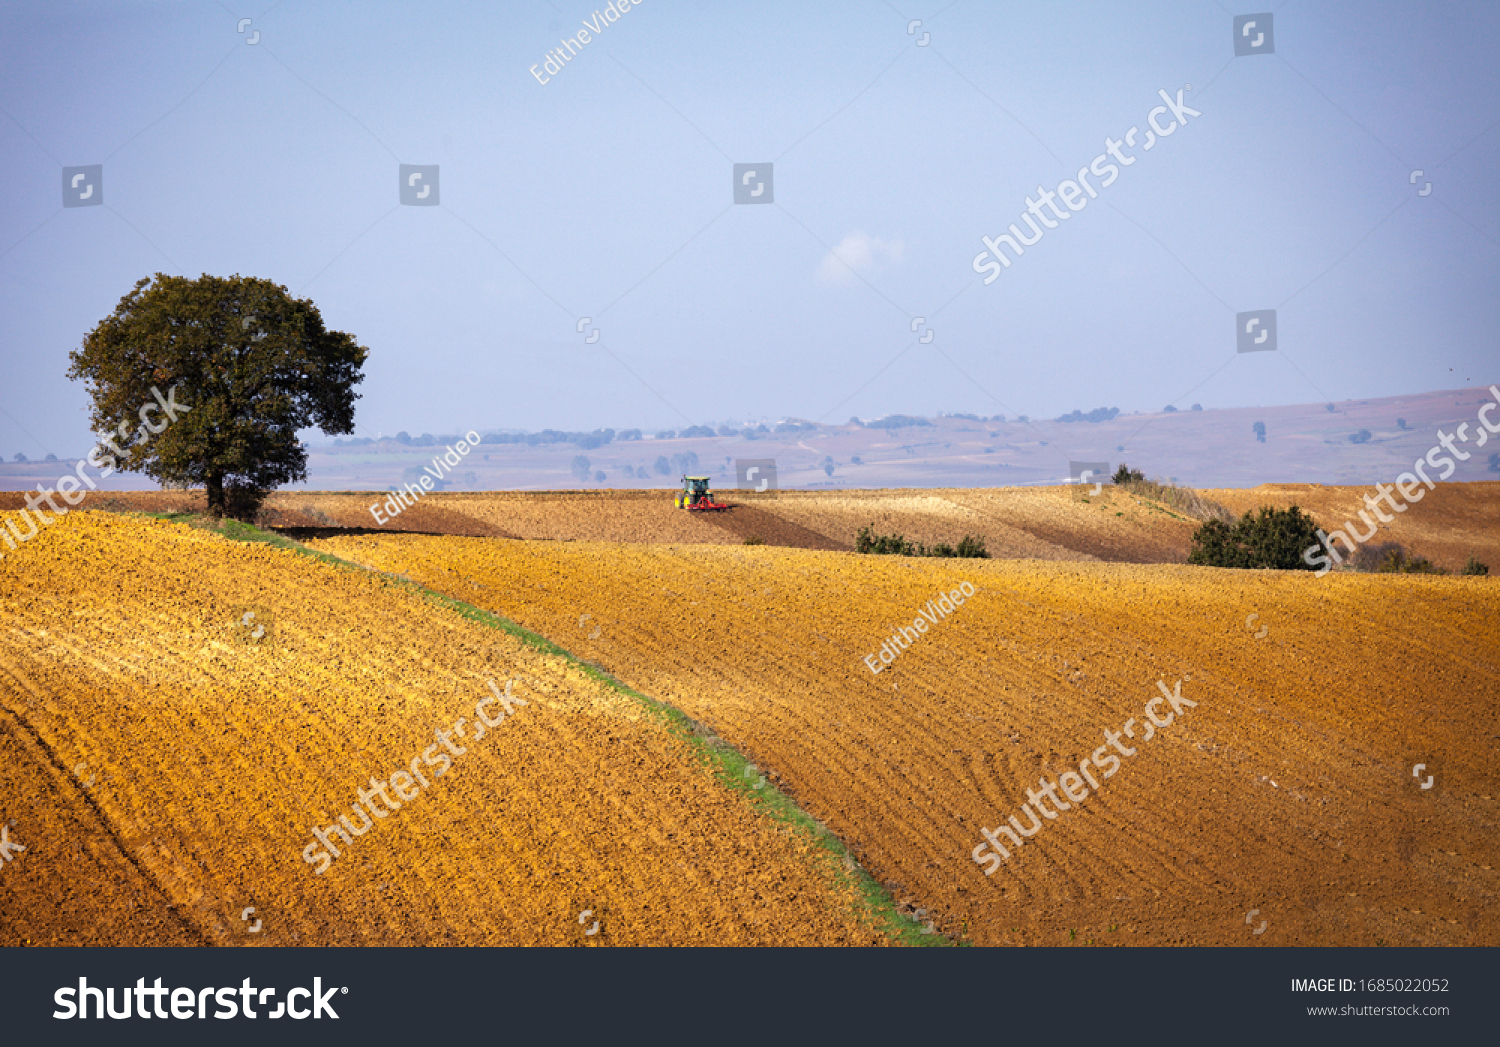 Edirne, Turkey - March 9 2020: Tractor harvesting or cultivating the field which is steep and there is a single tree on the field. Harvesting season in fall near the sunset time.